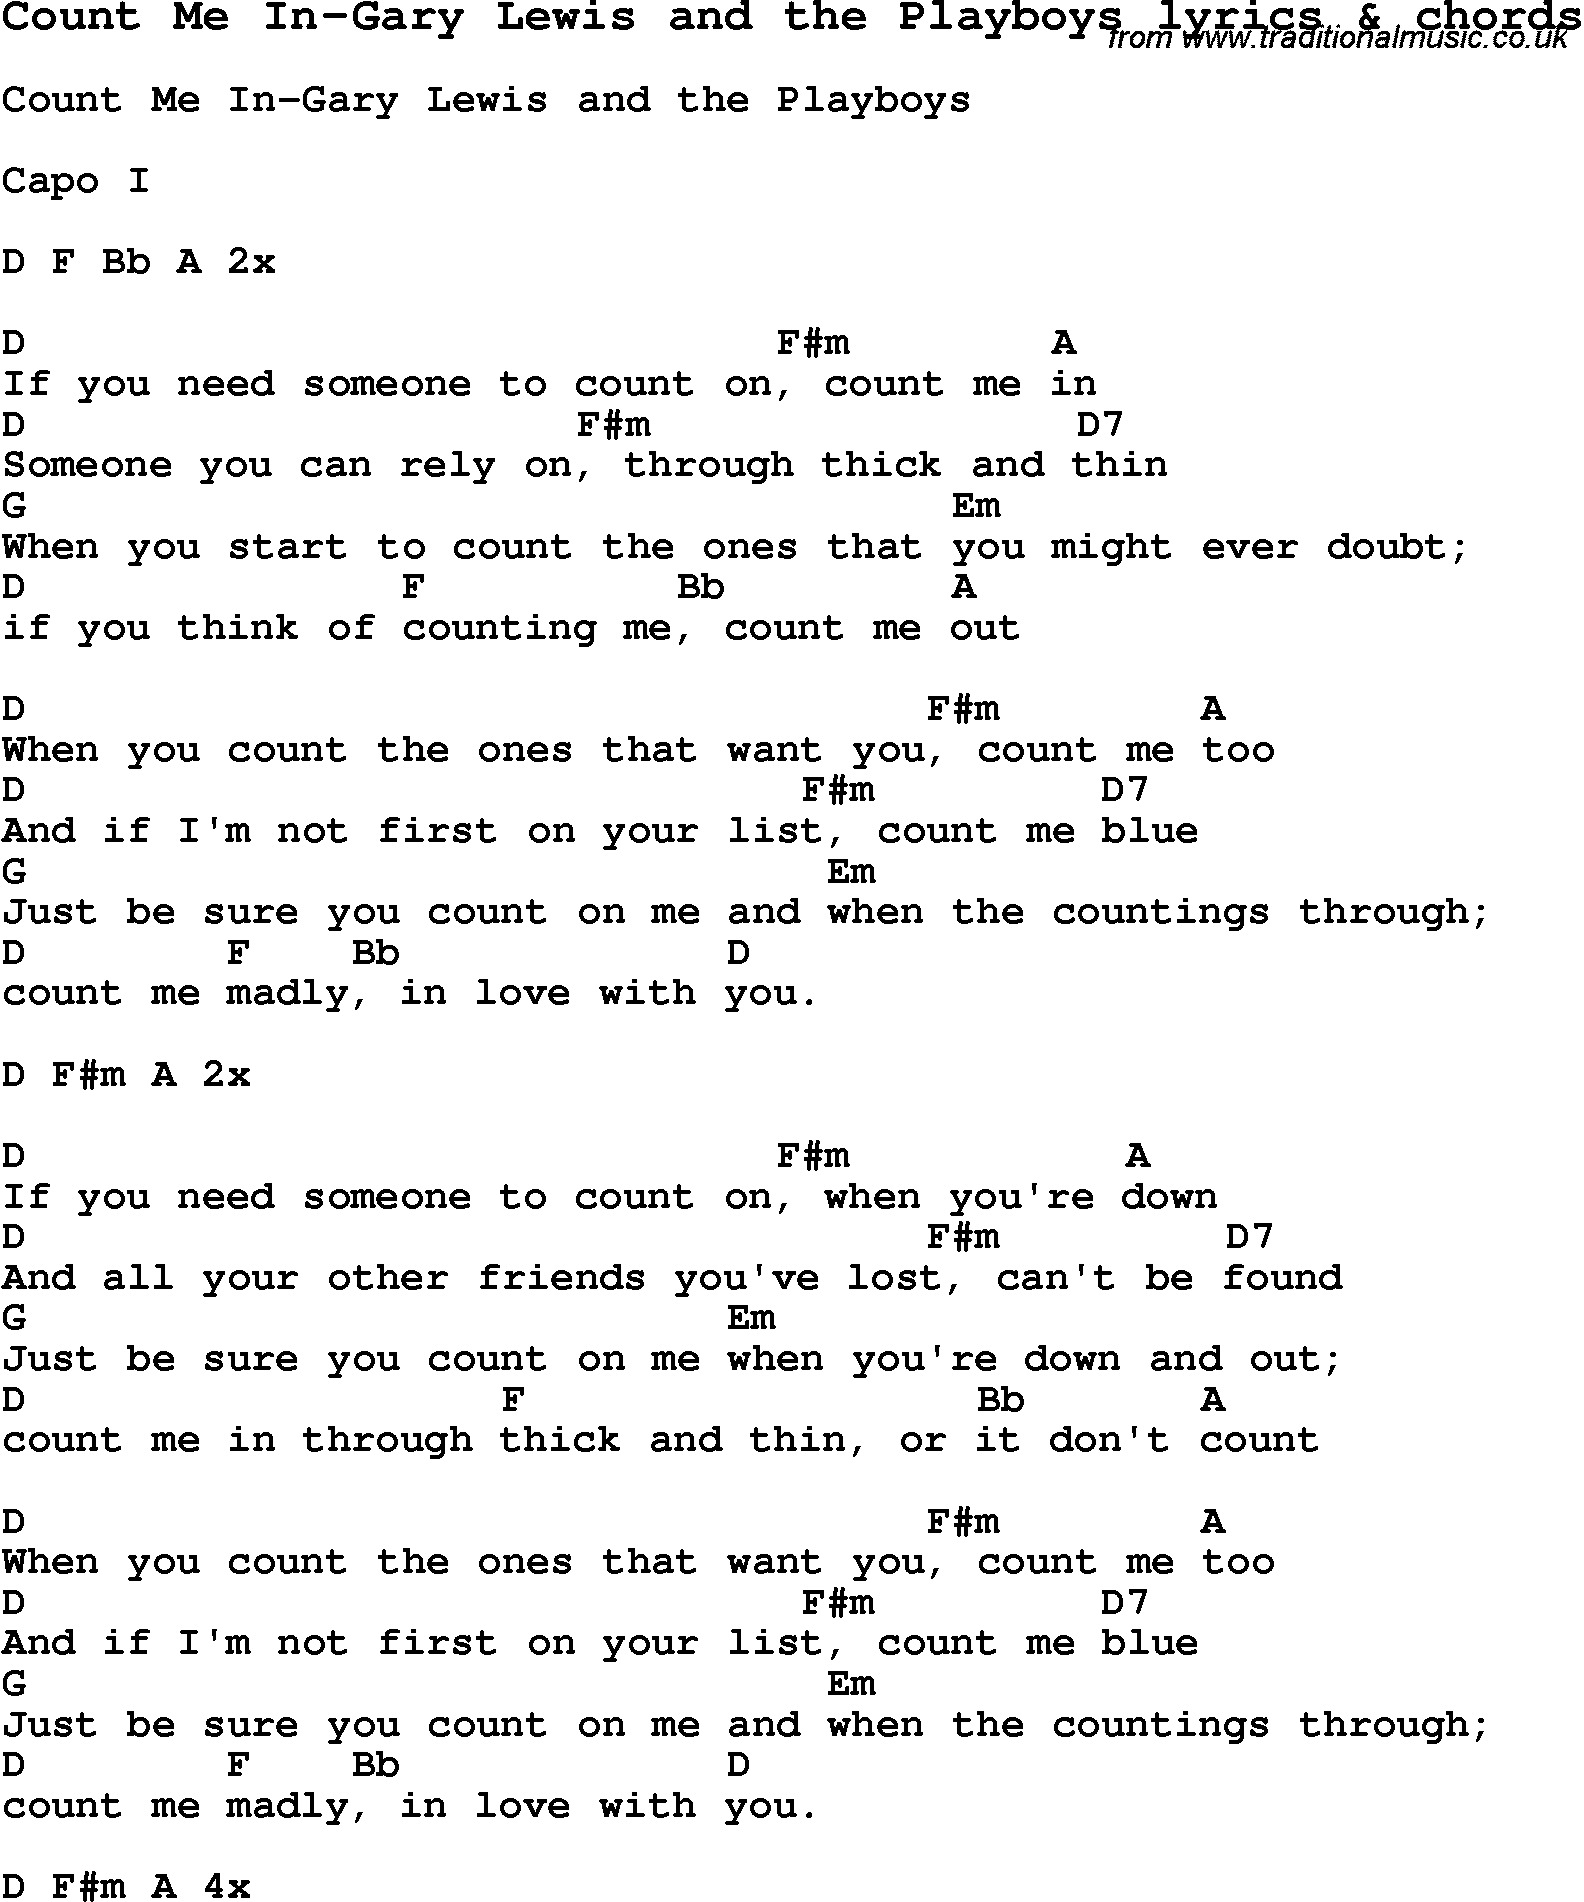 Love Song Lyrics for:Count Me In-Gary Lewis and the Playboys with chords.